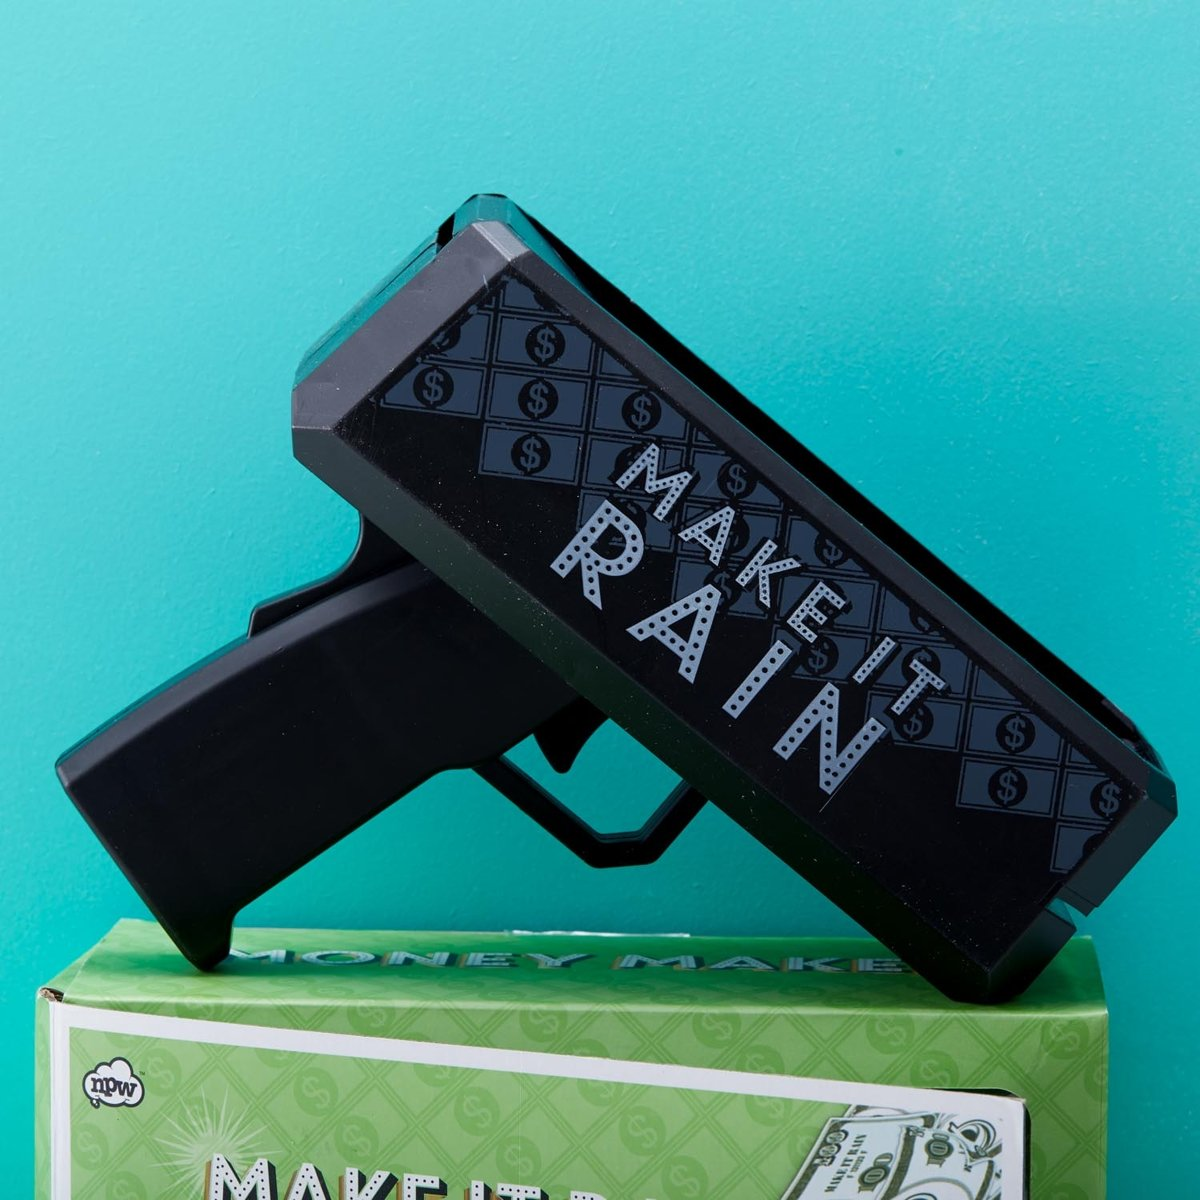 NPW Make It Rain Cash Gun